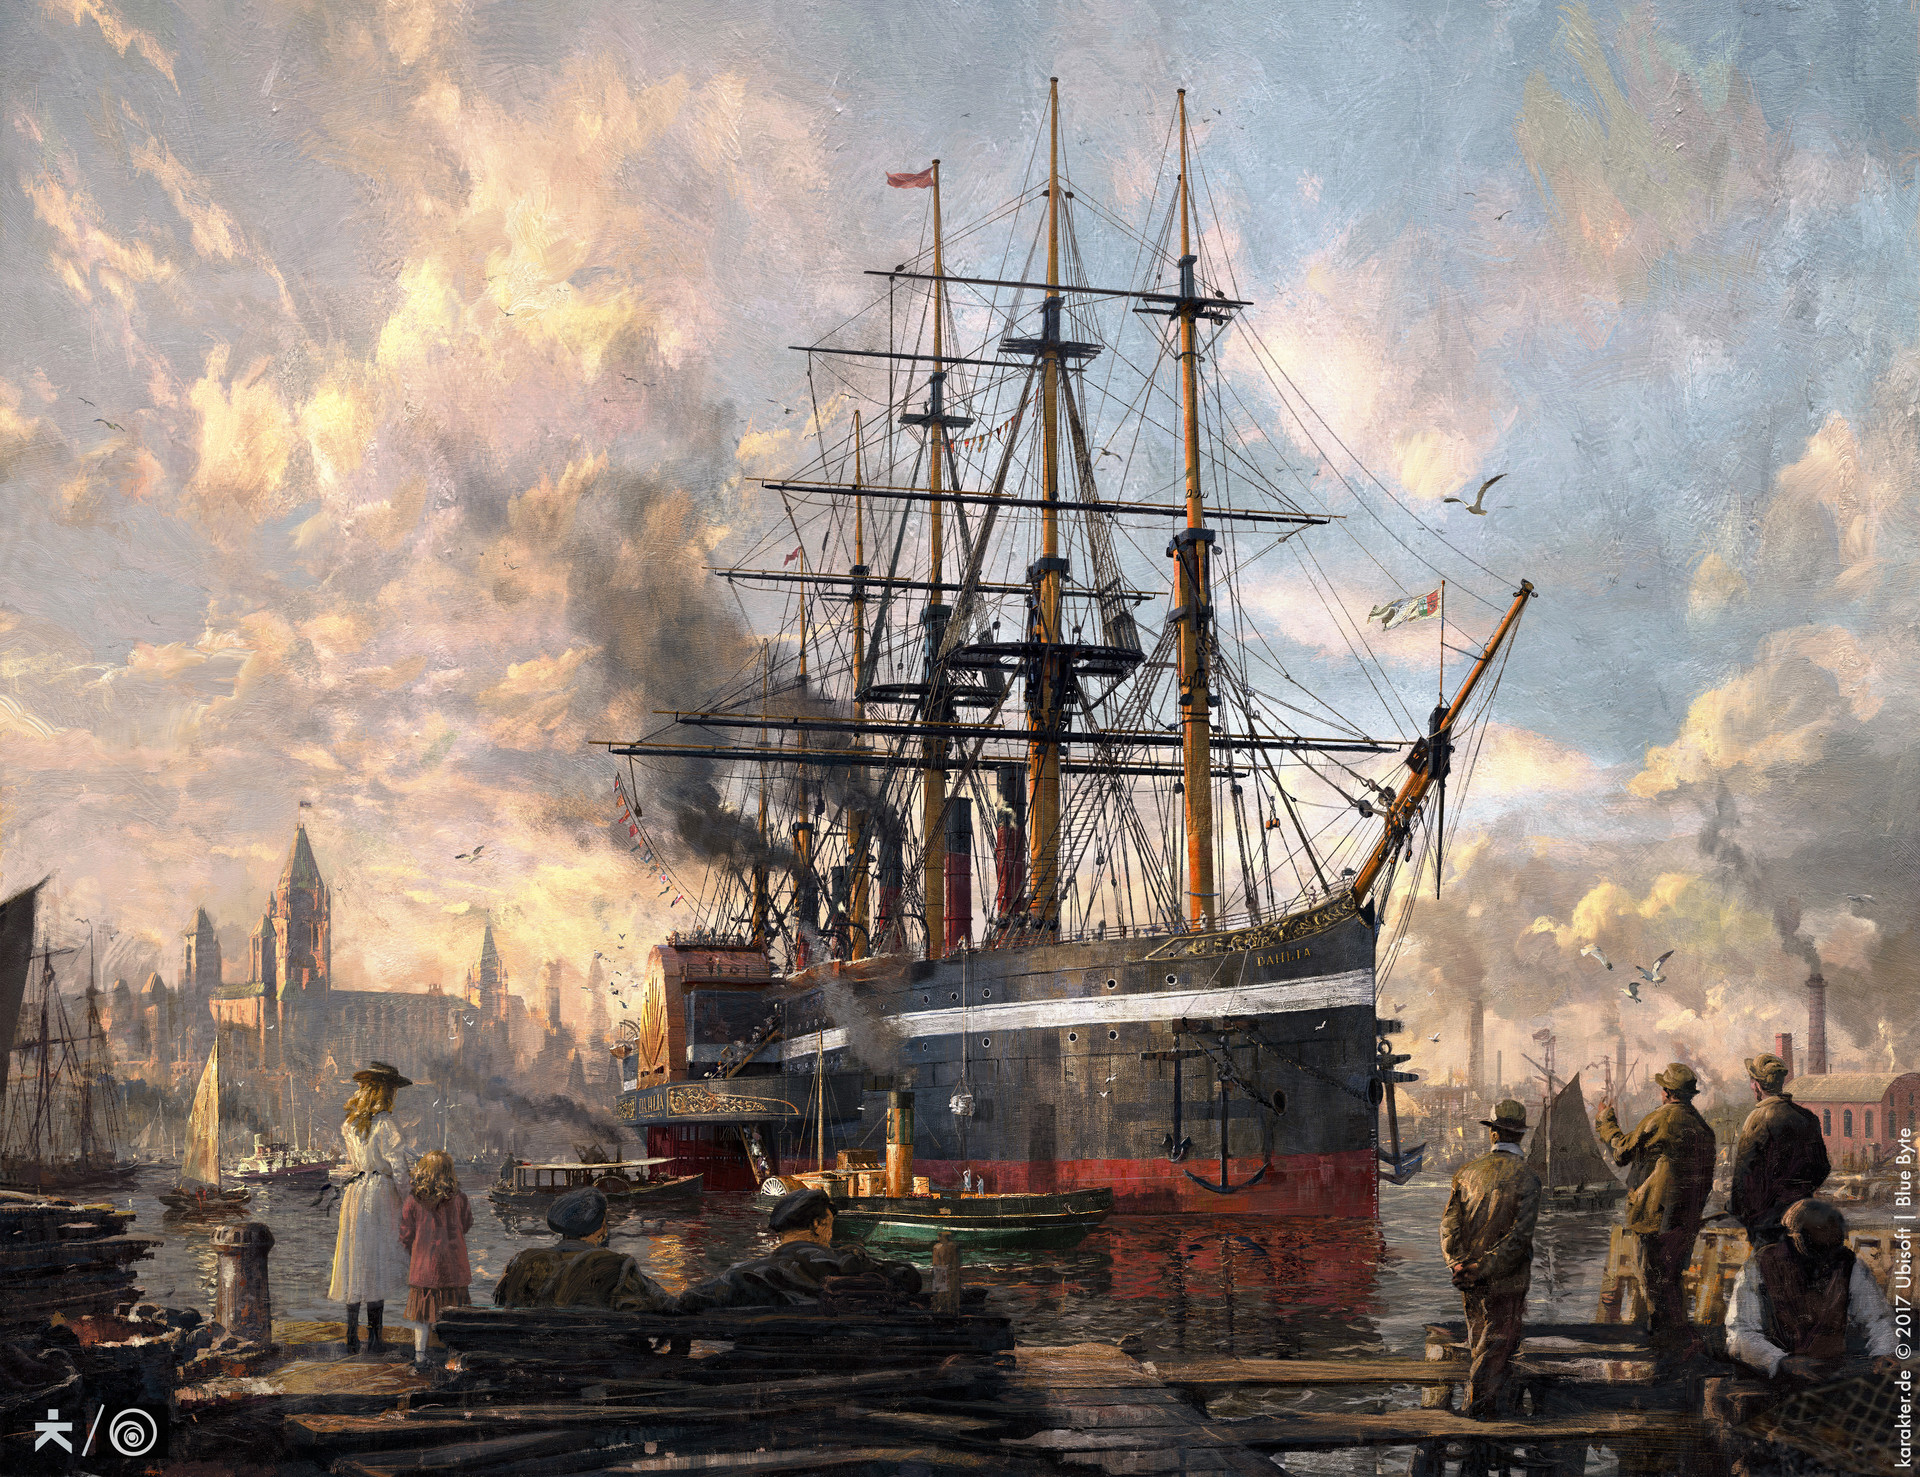 """FINAL. Actually the client version has more sky on top to make room for the """"Anno 1800"""" header. All 3D elements have been carefully painted over to get to the traditionell media look we were after."""